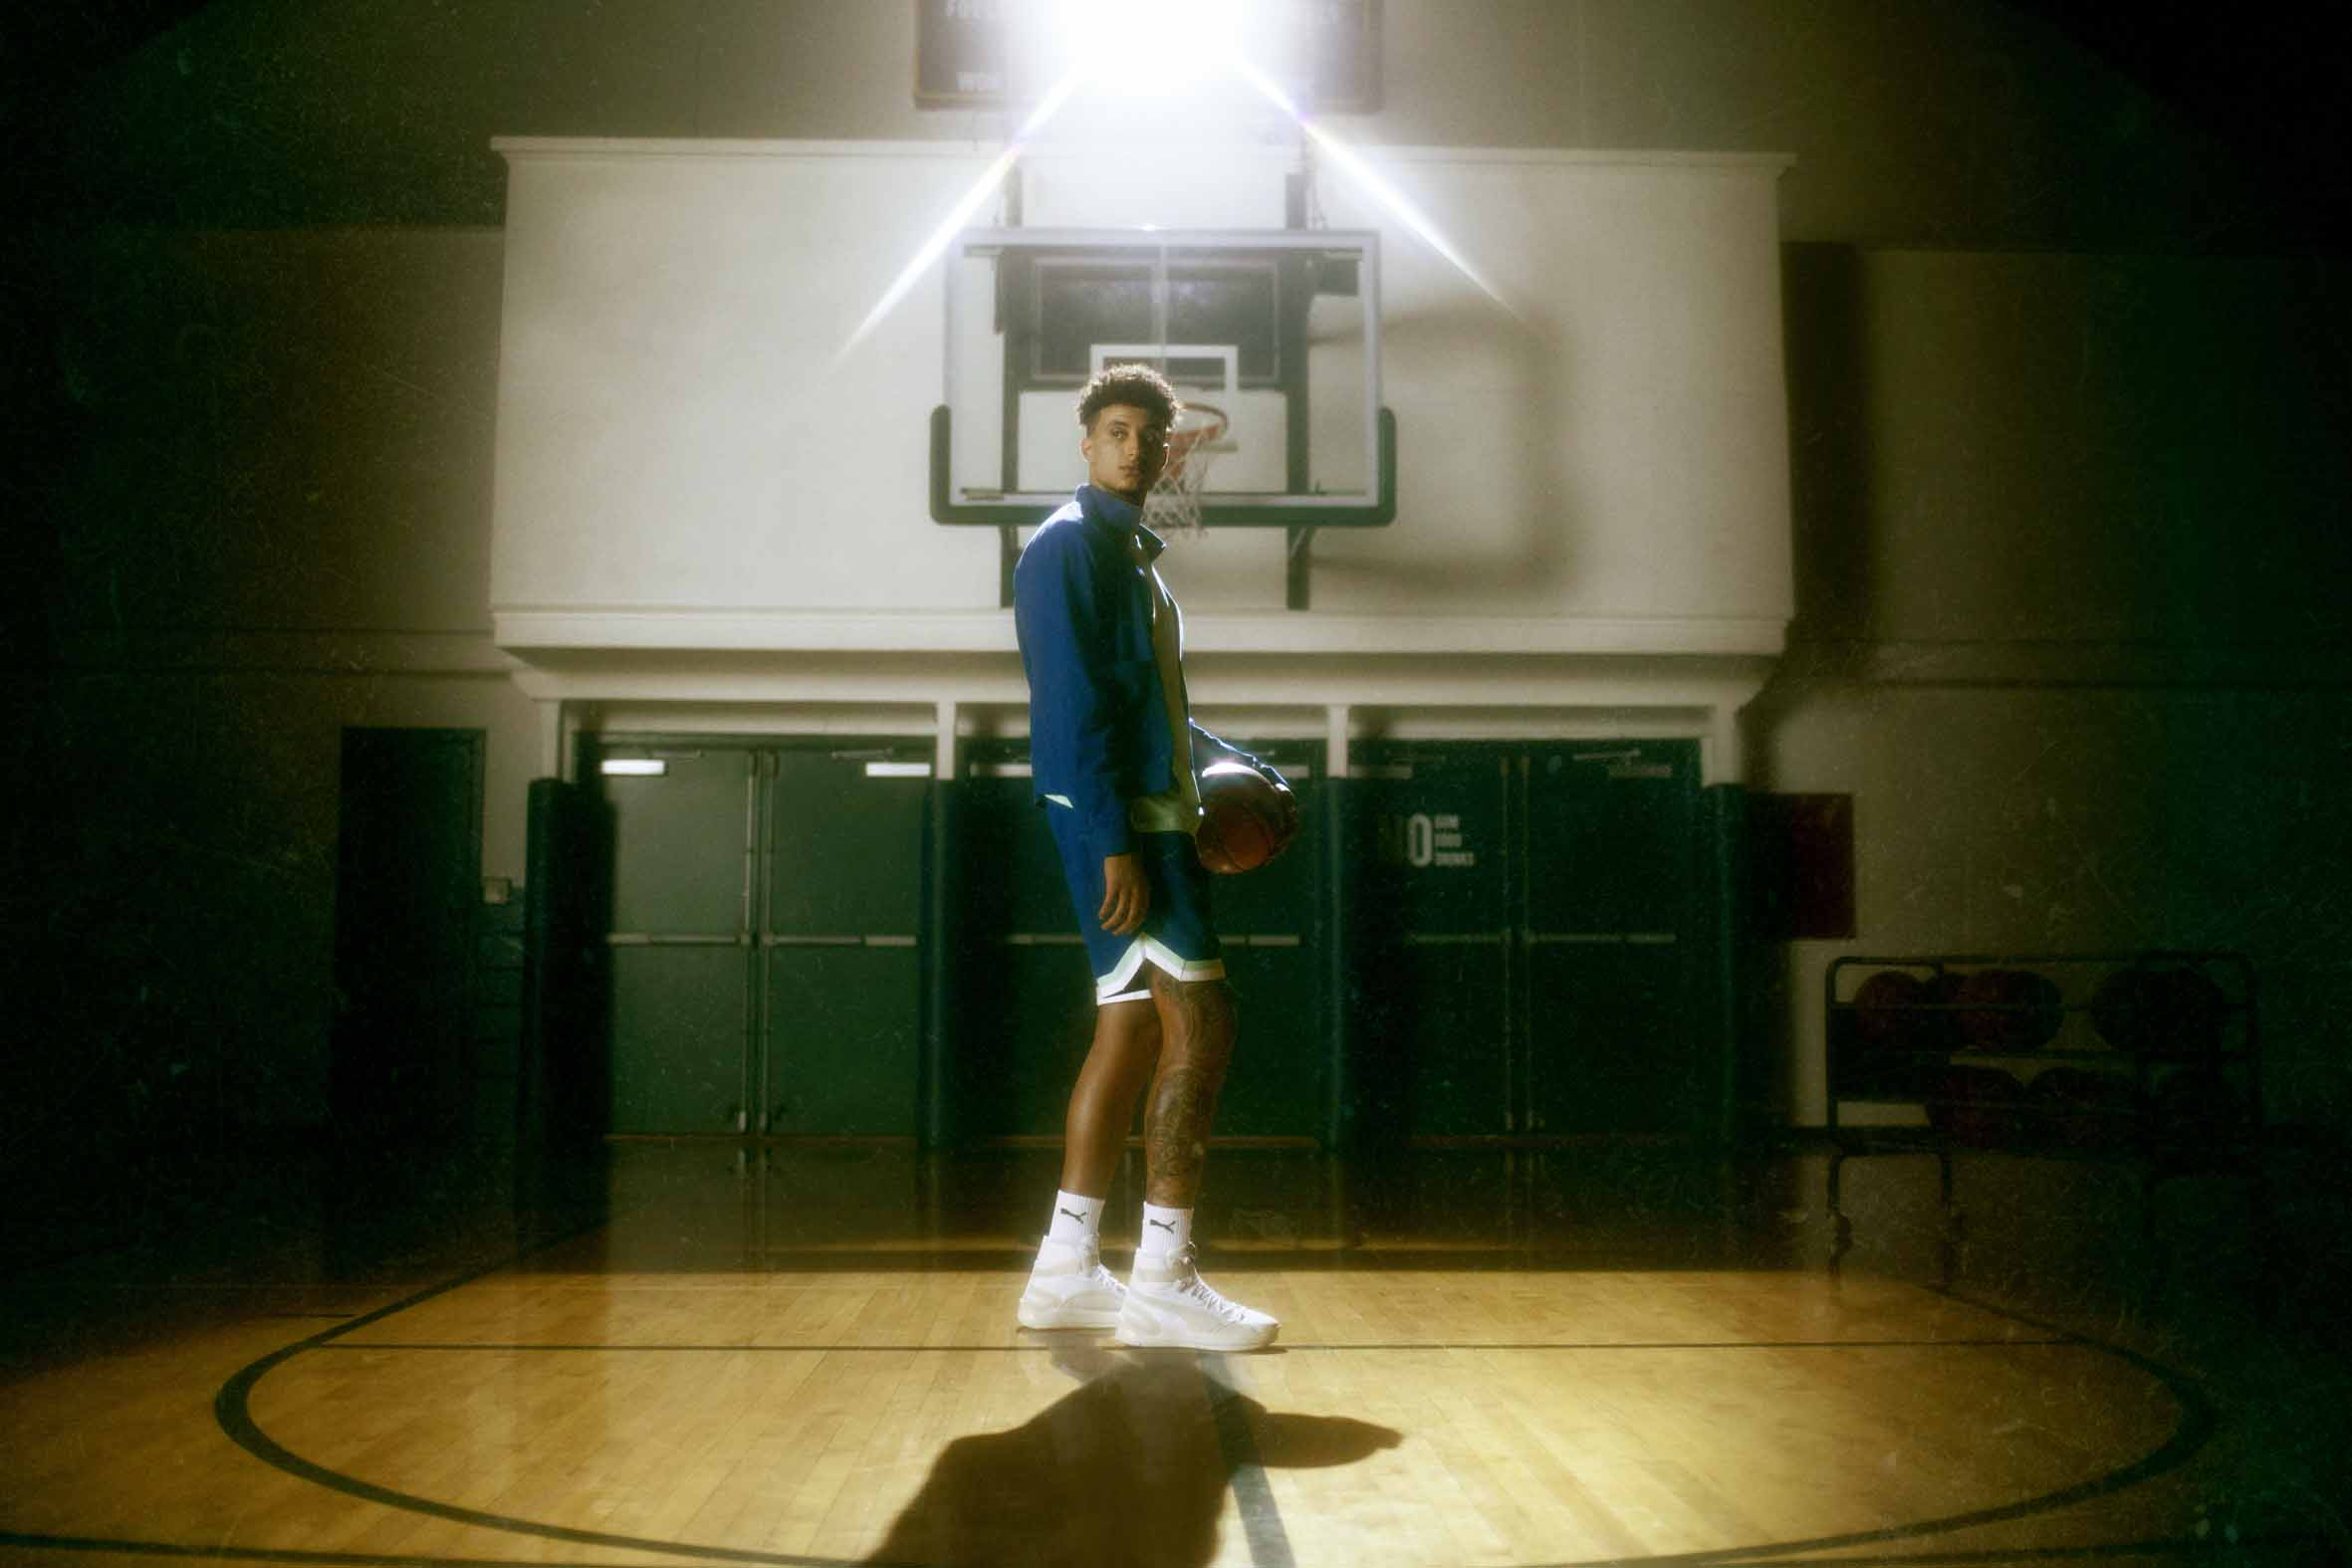 J.Cole and PUMA Announce Partnership With Short Film